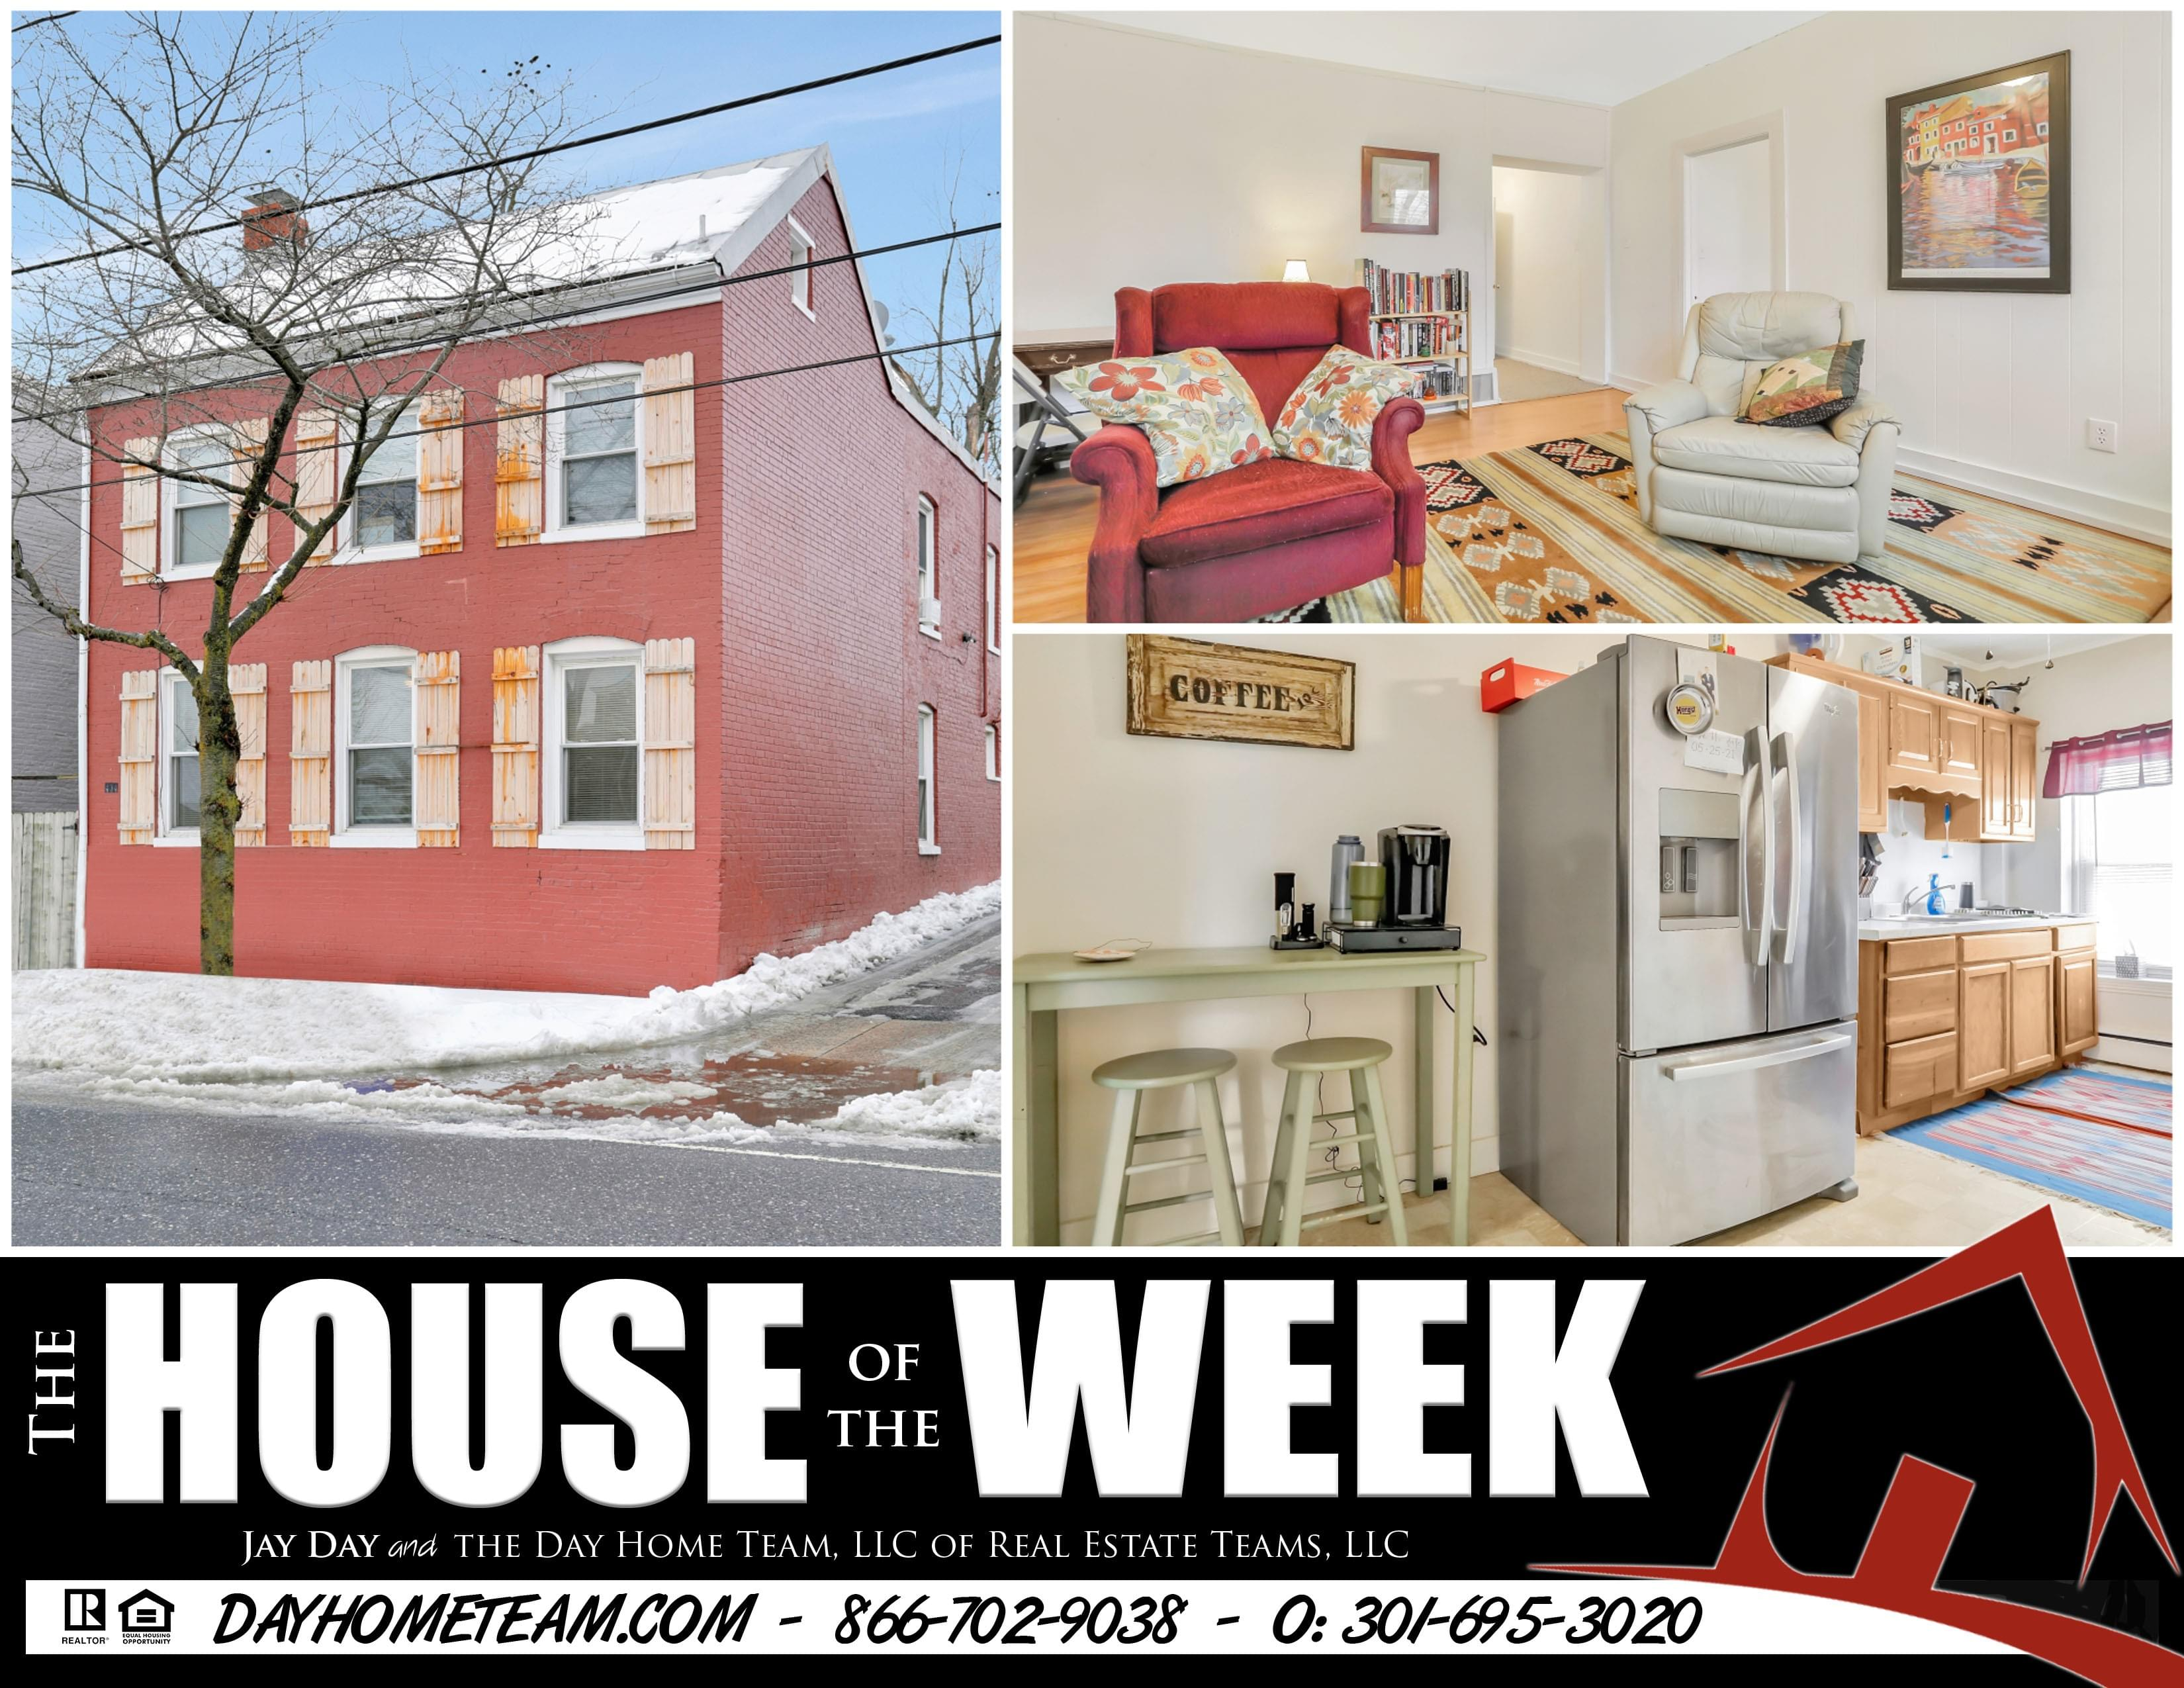 434 South St, Frederick, MD 21701